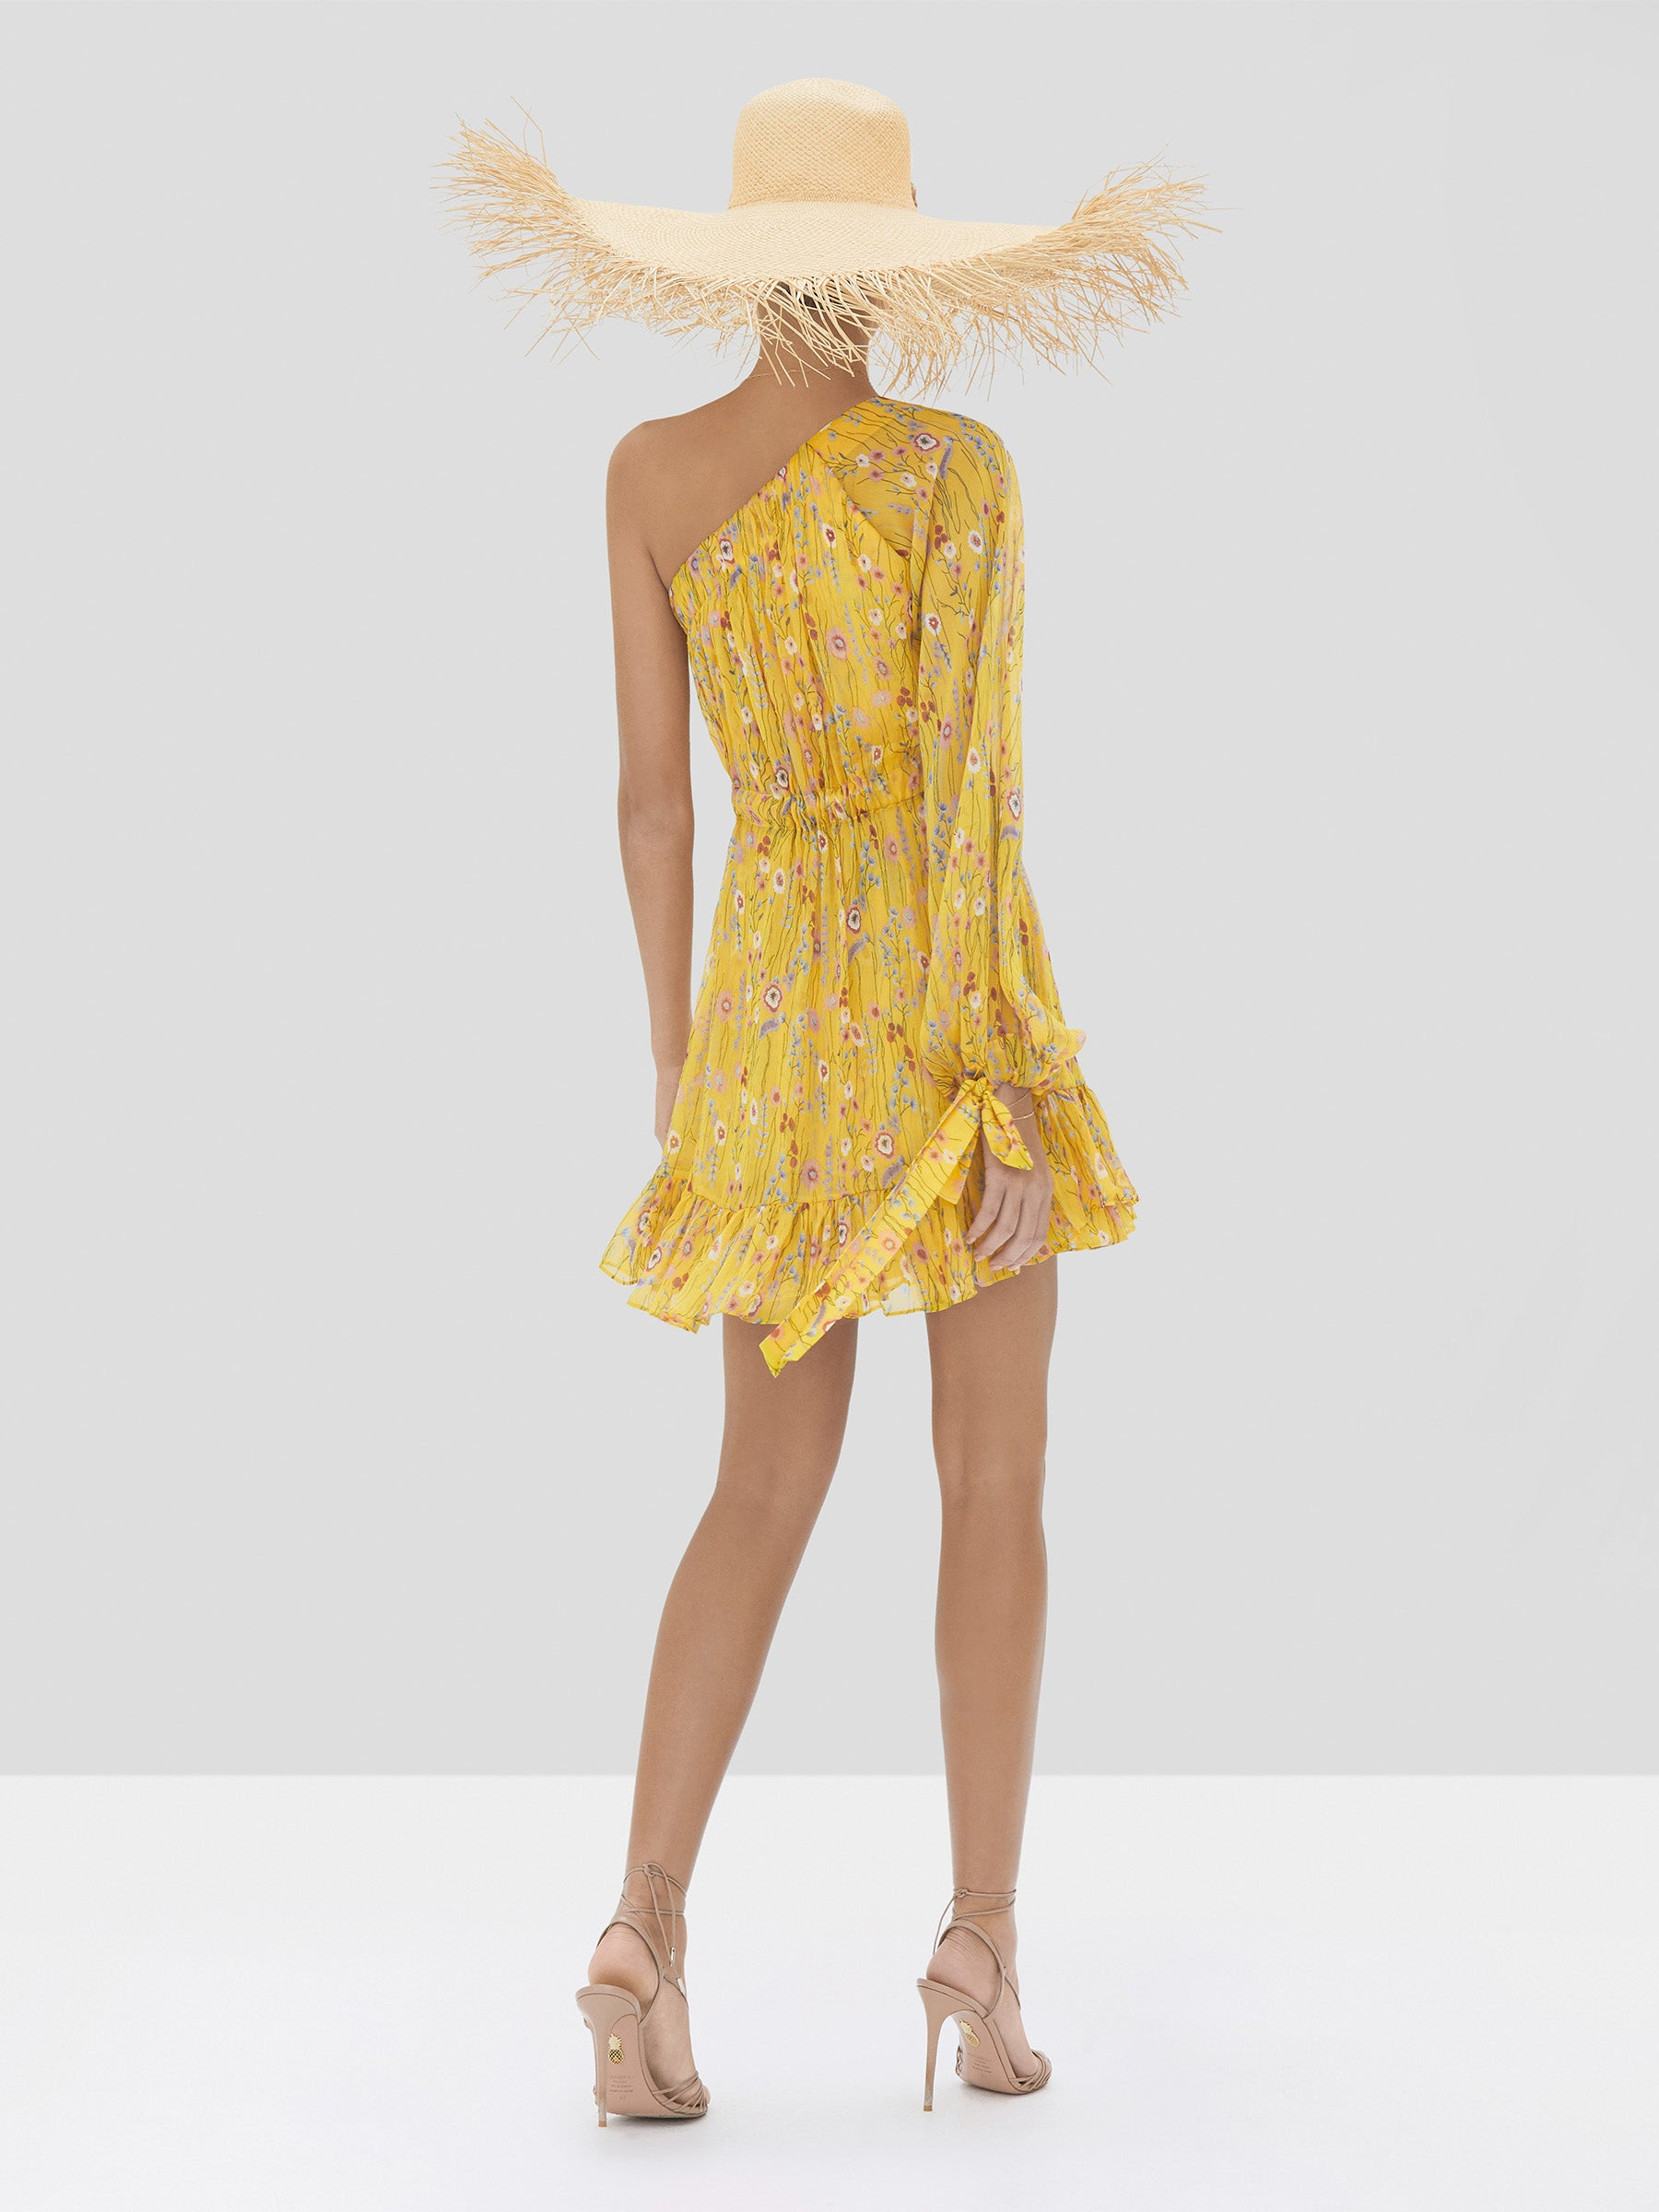 Alexis Edyta Dress in Sunrise Bouquet from Spring Summer 2020 - Rear View